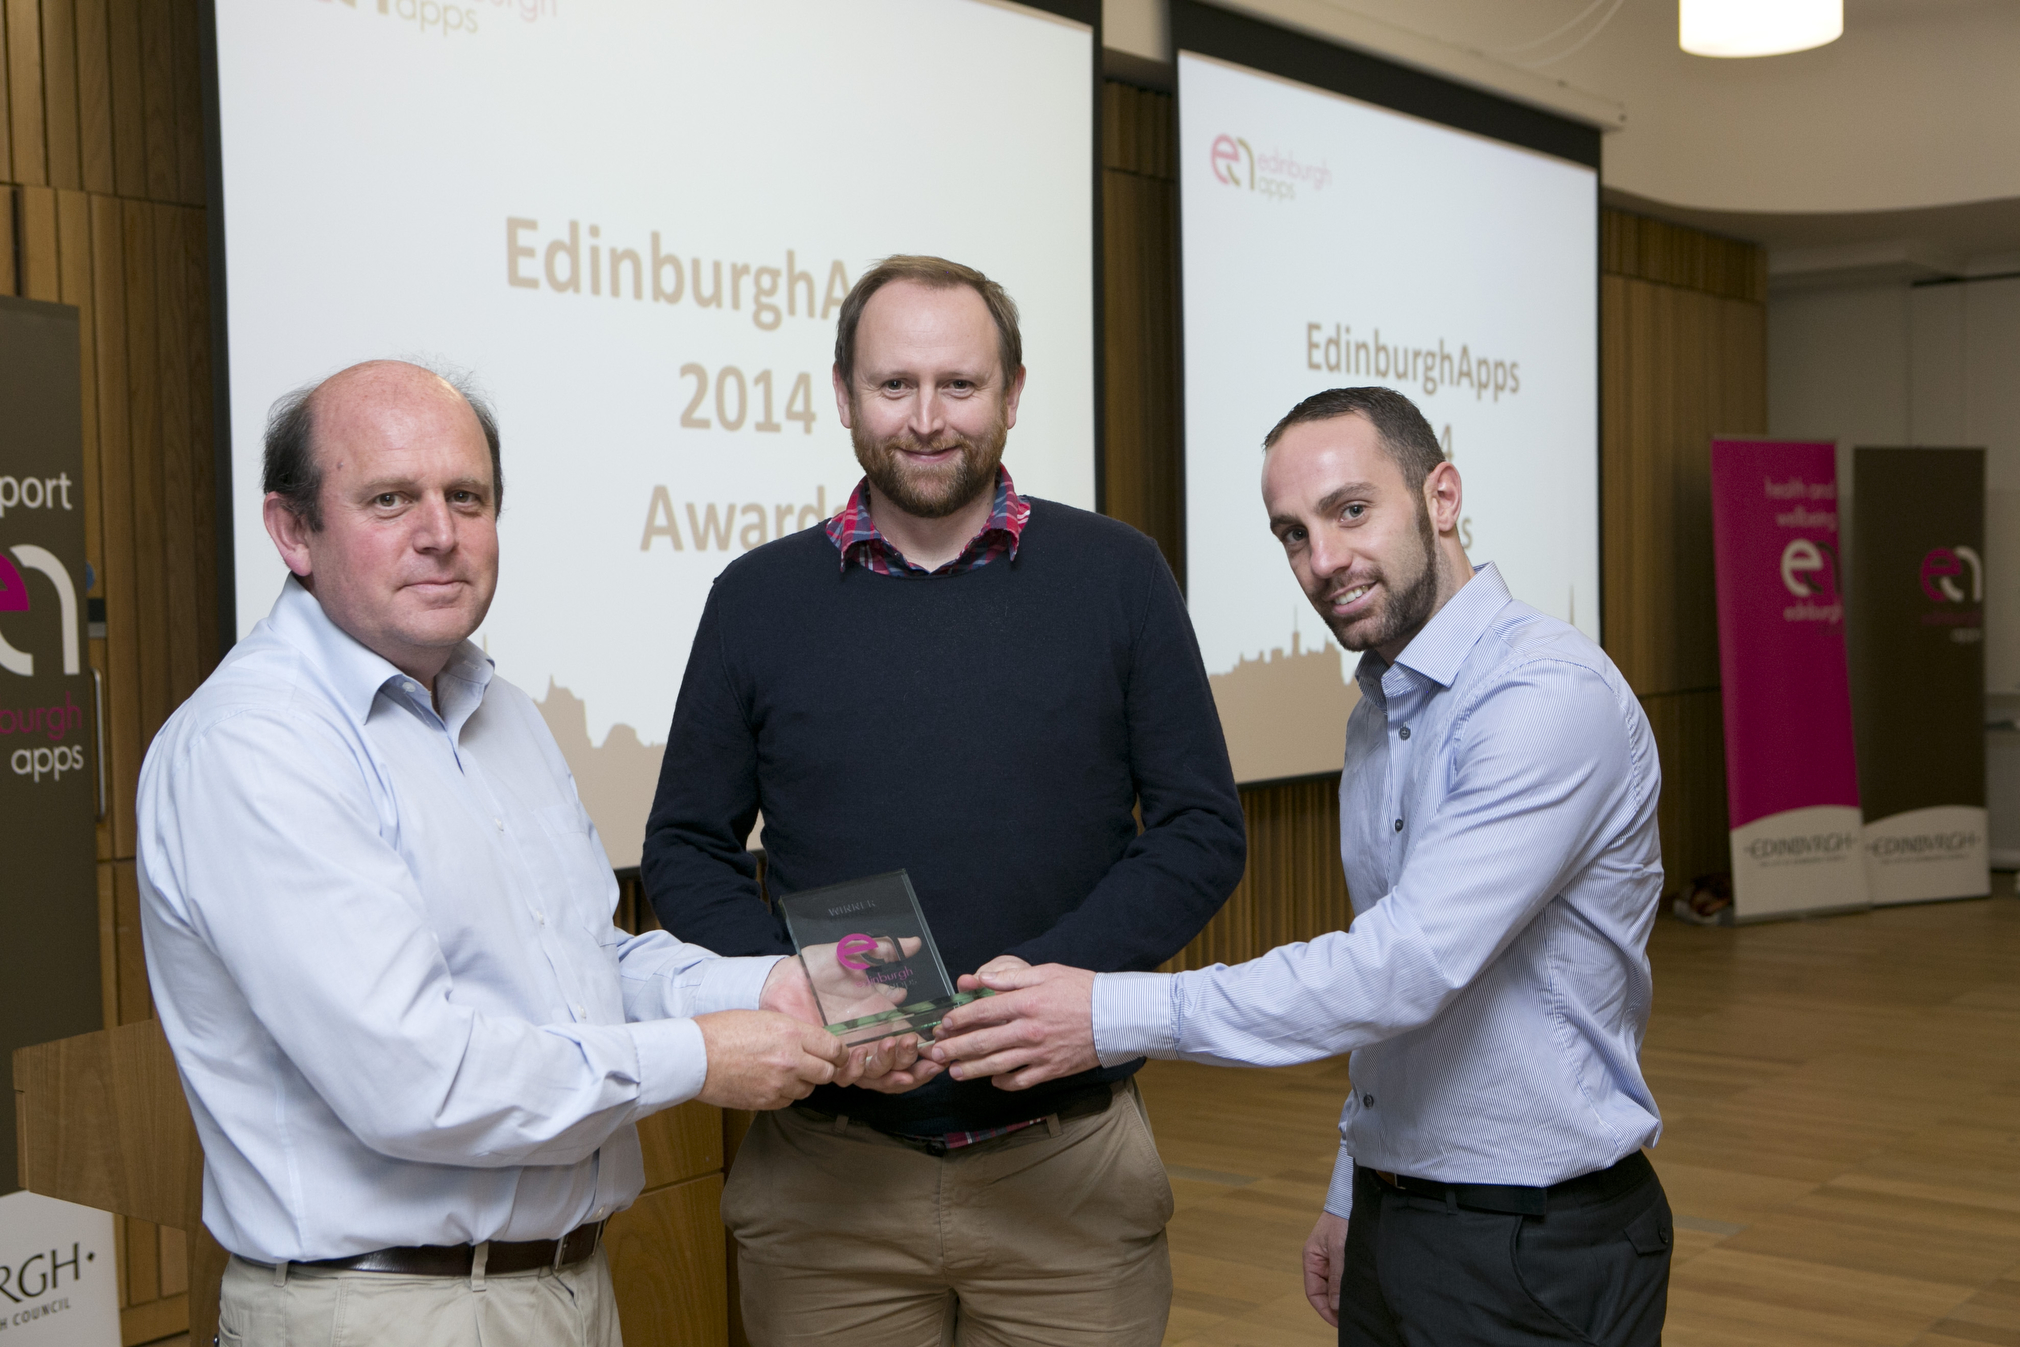 Winners of the Edinburgh Apps competition 2014